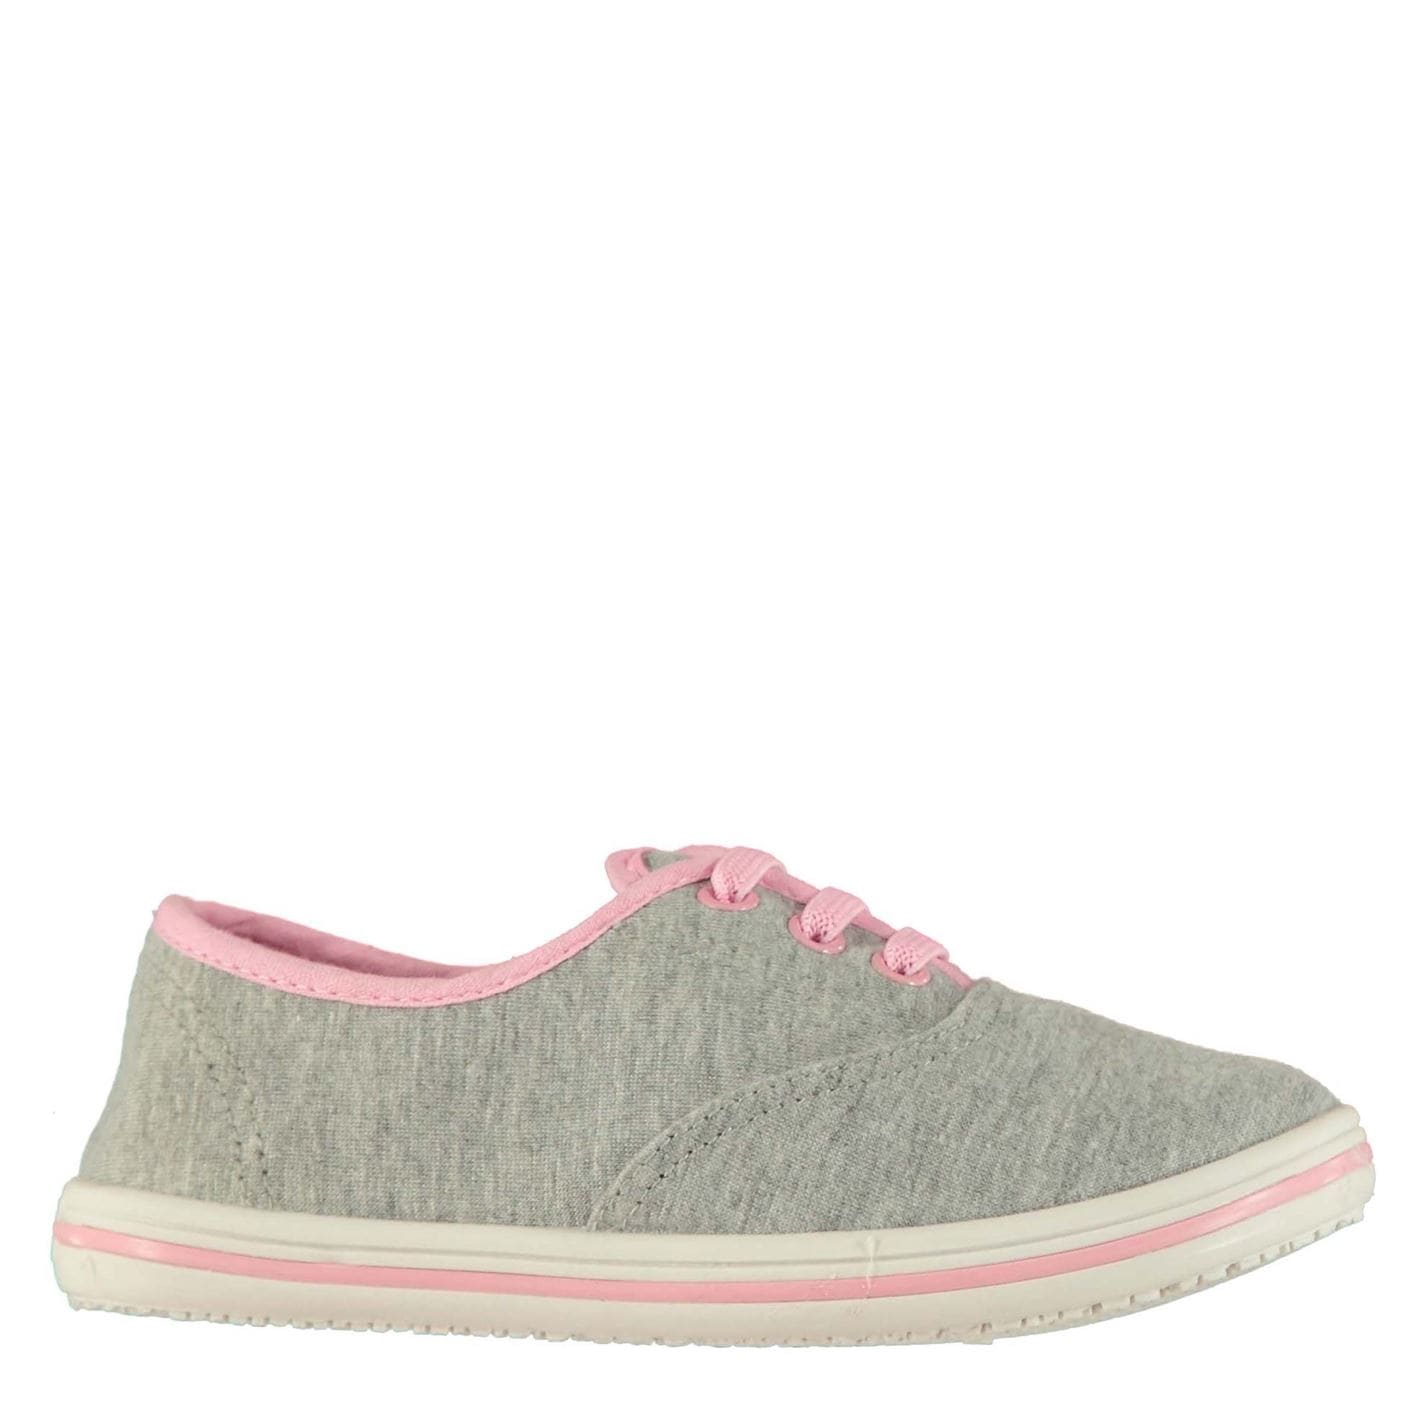 Slazenger Infants Canvas Pumps Grey Marl/Pink